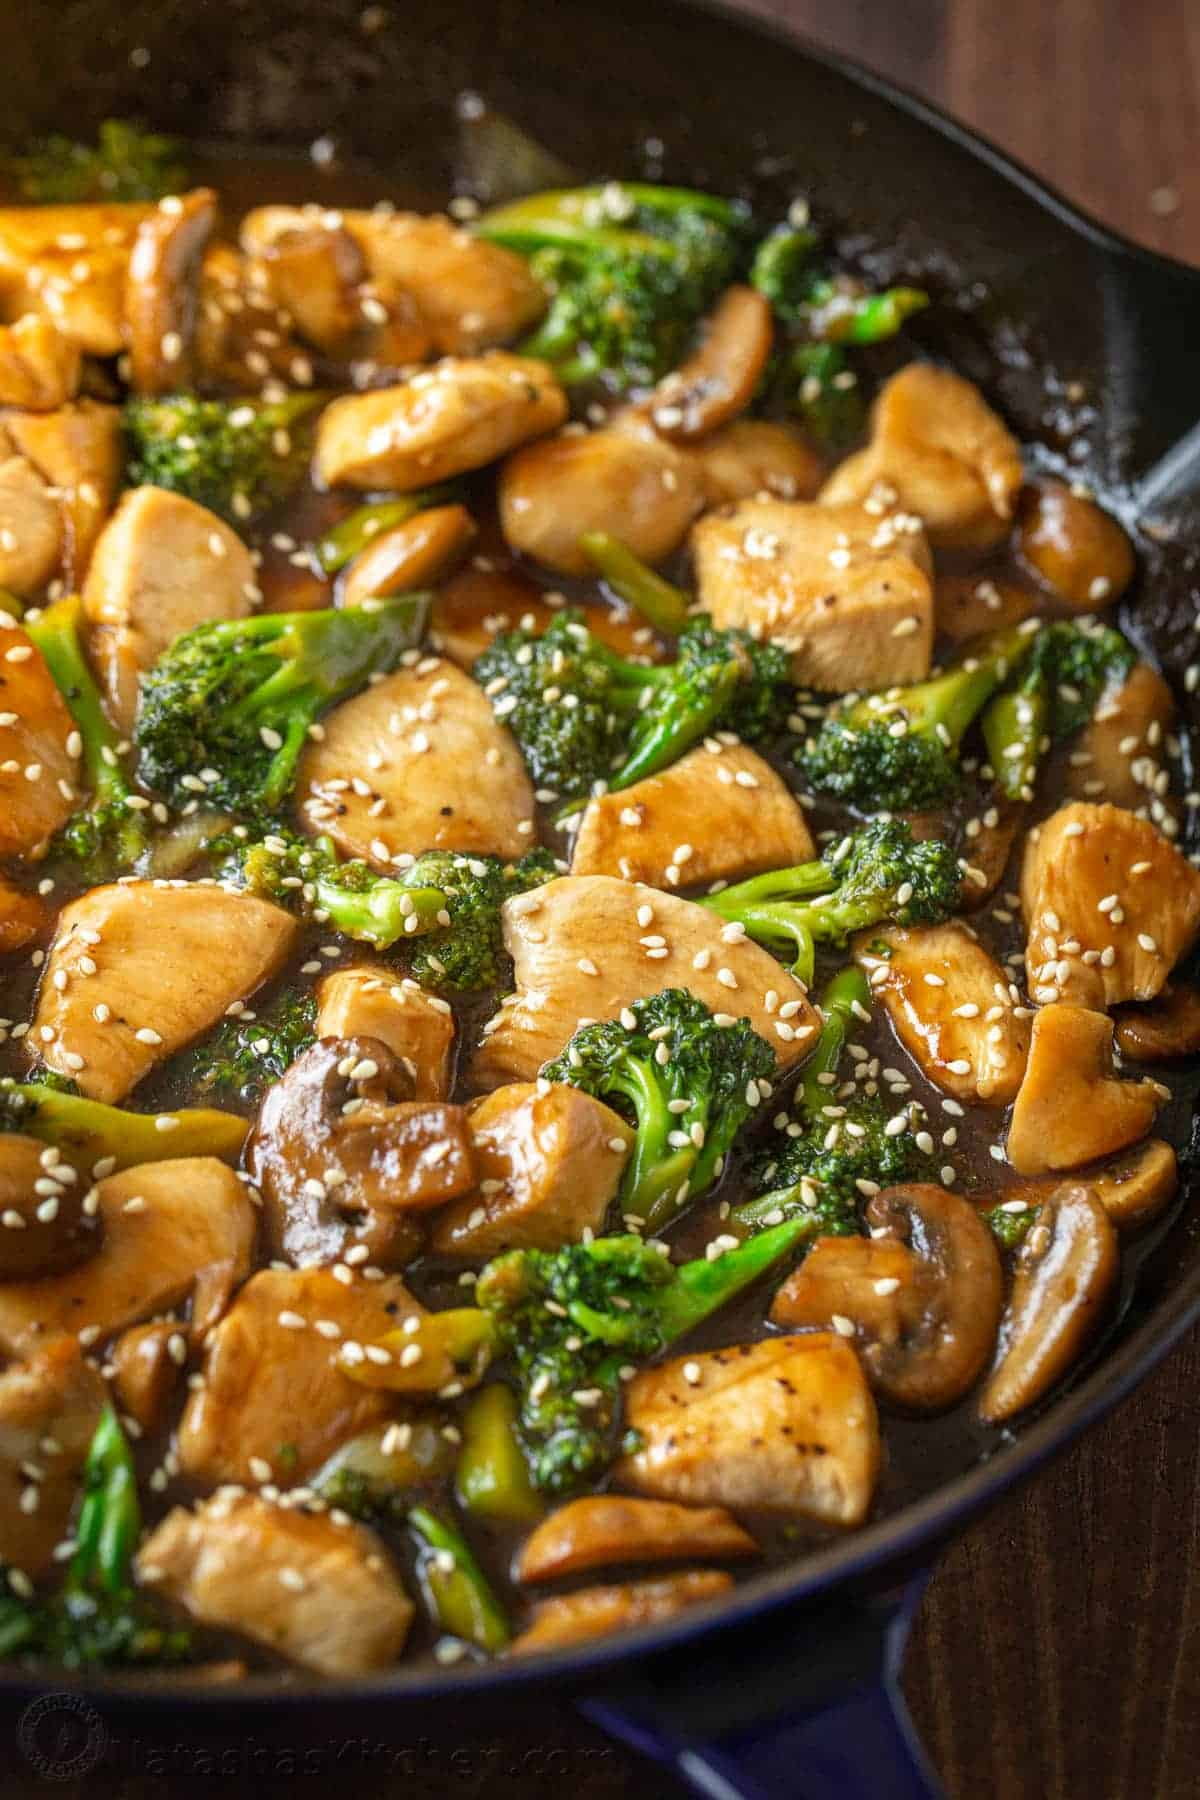 Chicken And Broccoli Stir Fry Video Natashaskitchen Com